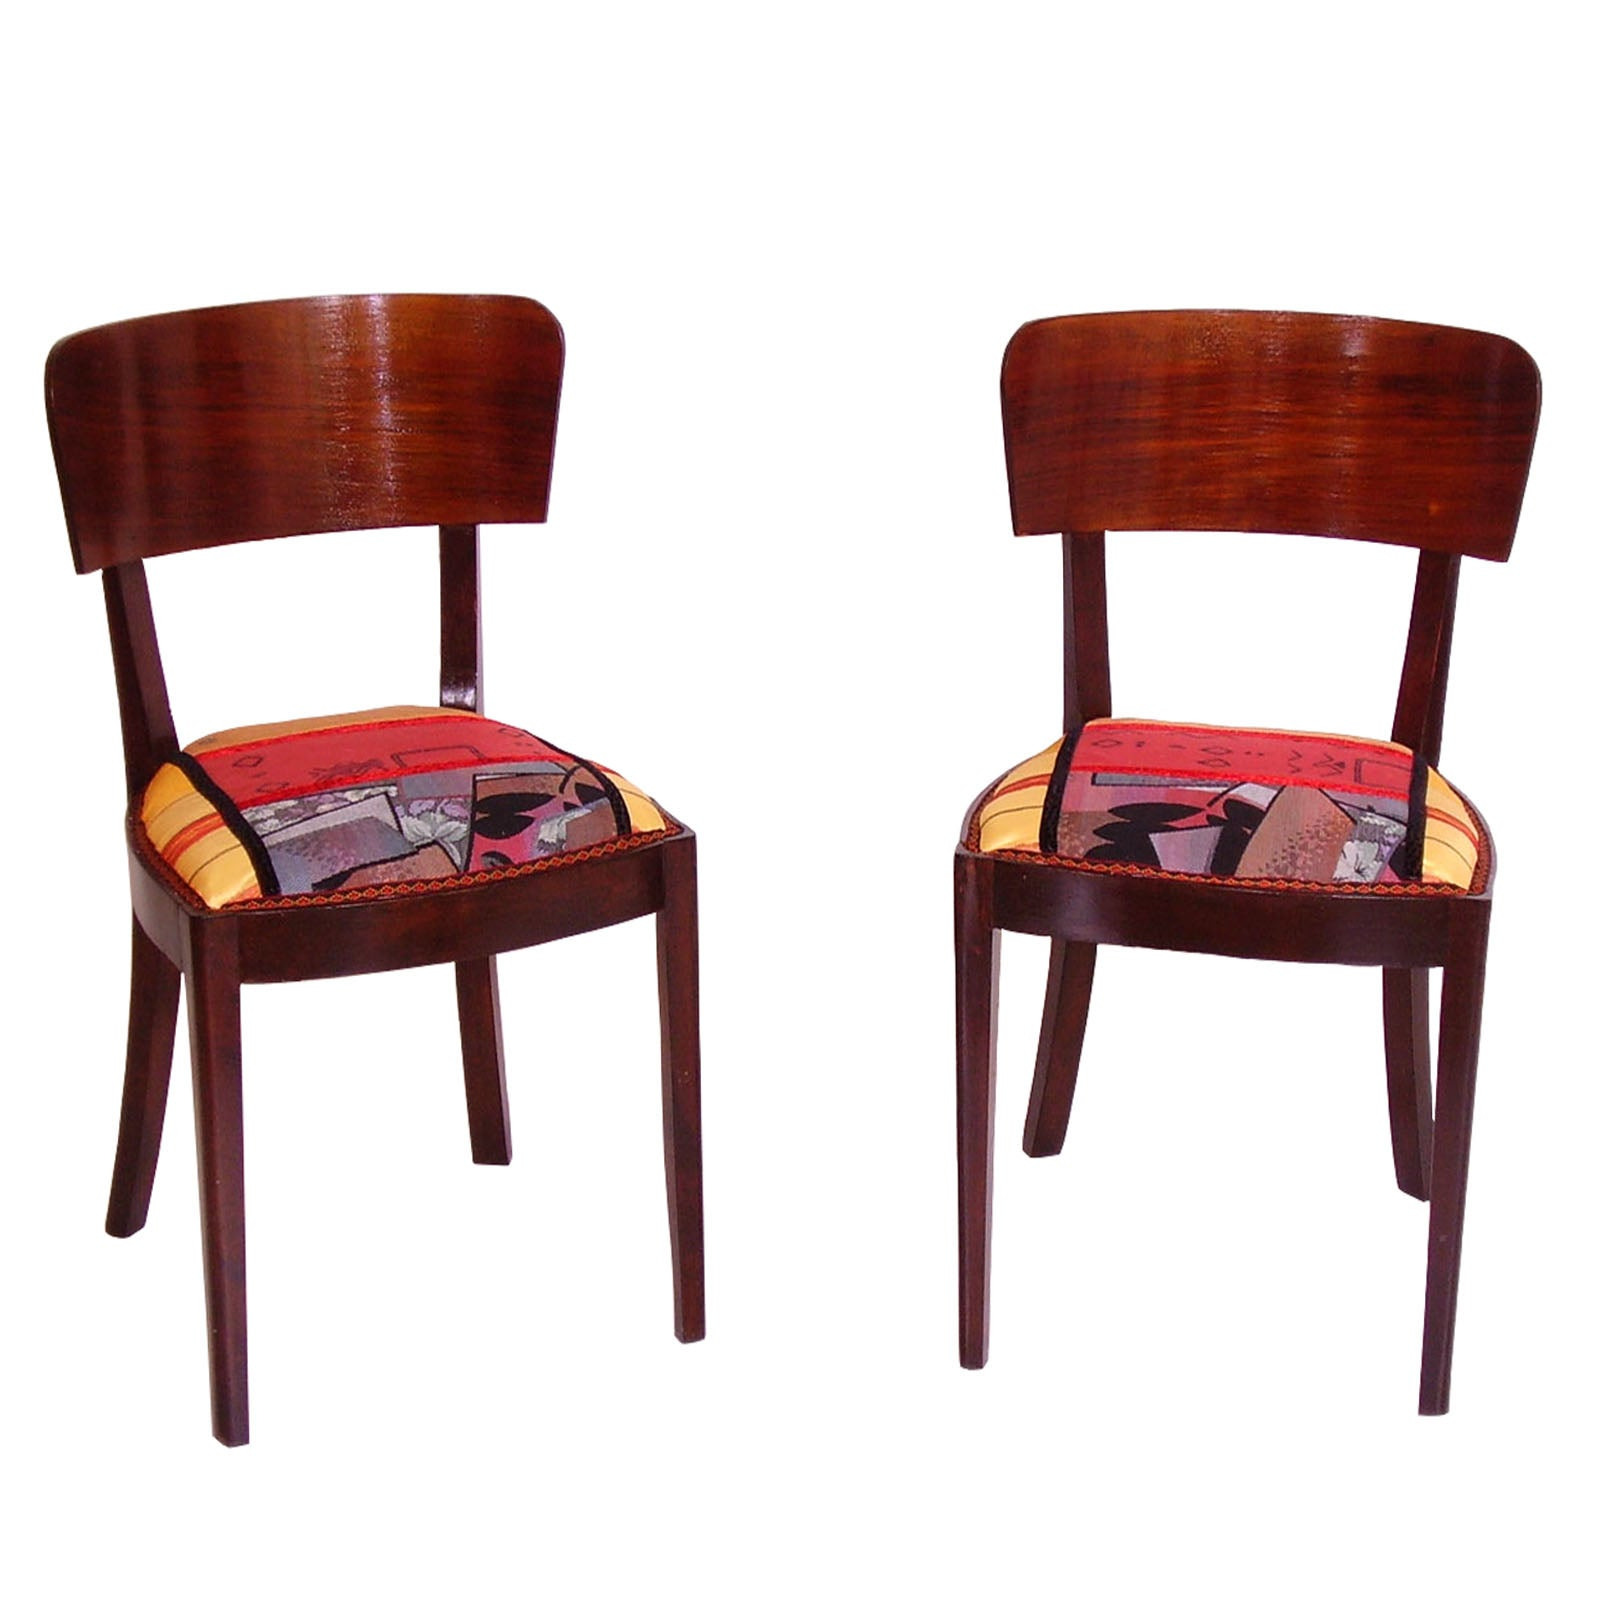 1920s Art Deco Side Chairs in Walnut, Original Sitting with Abstract Upholstery